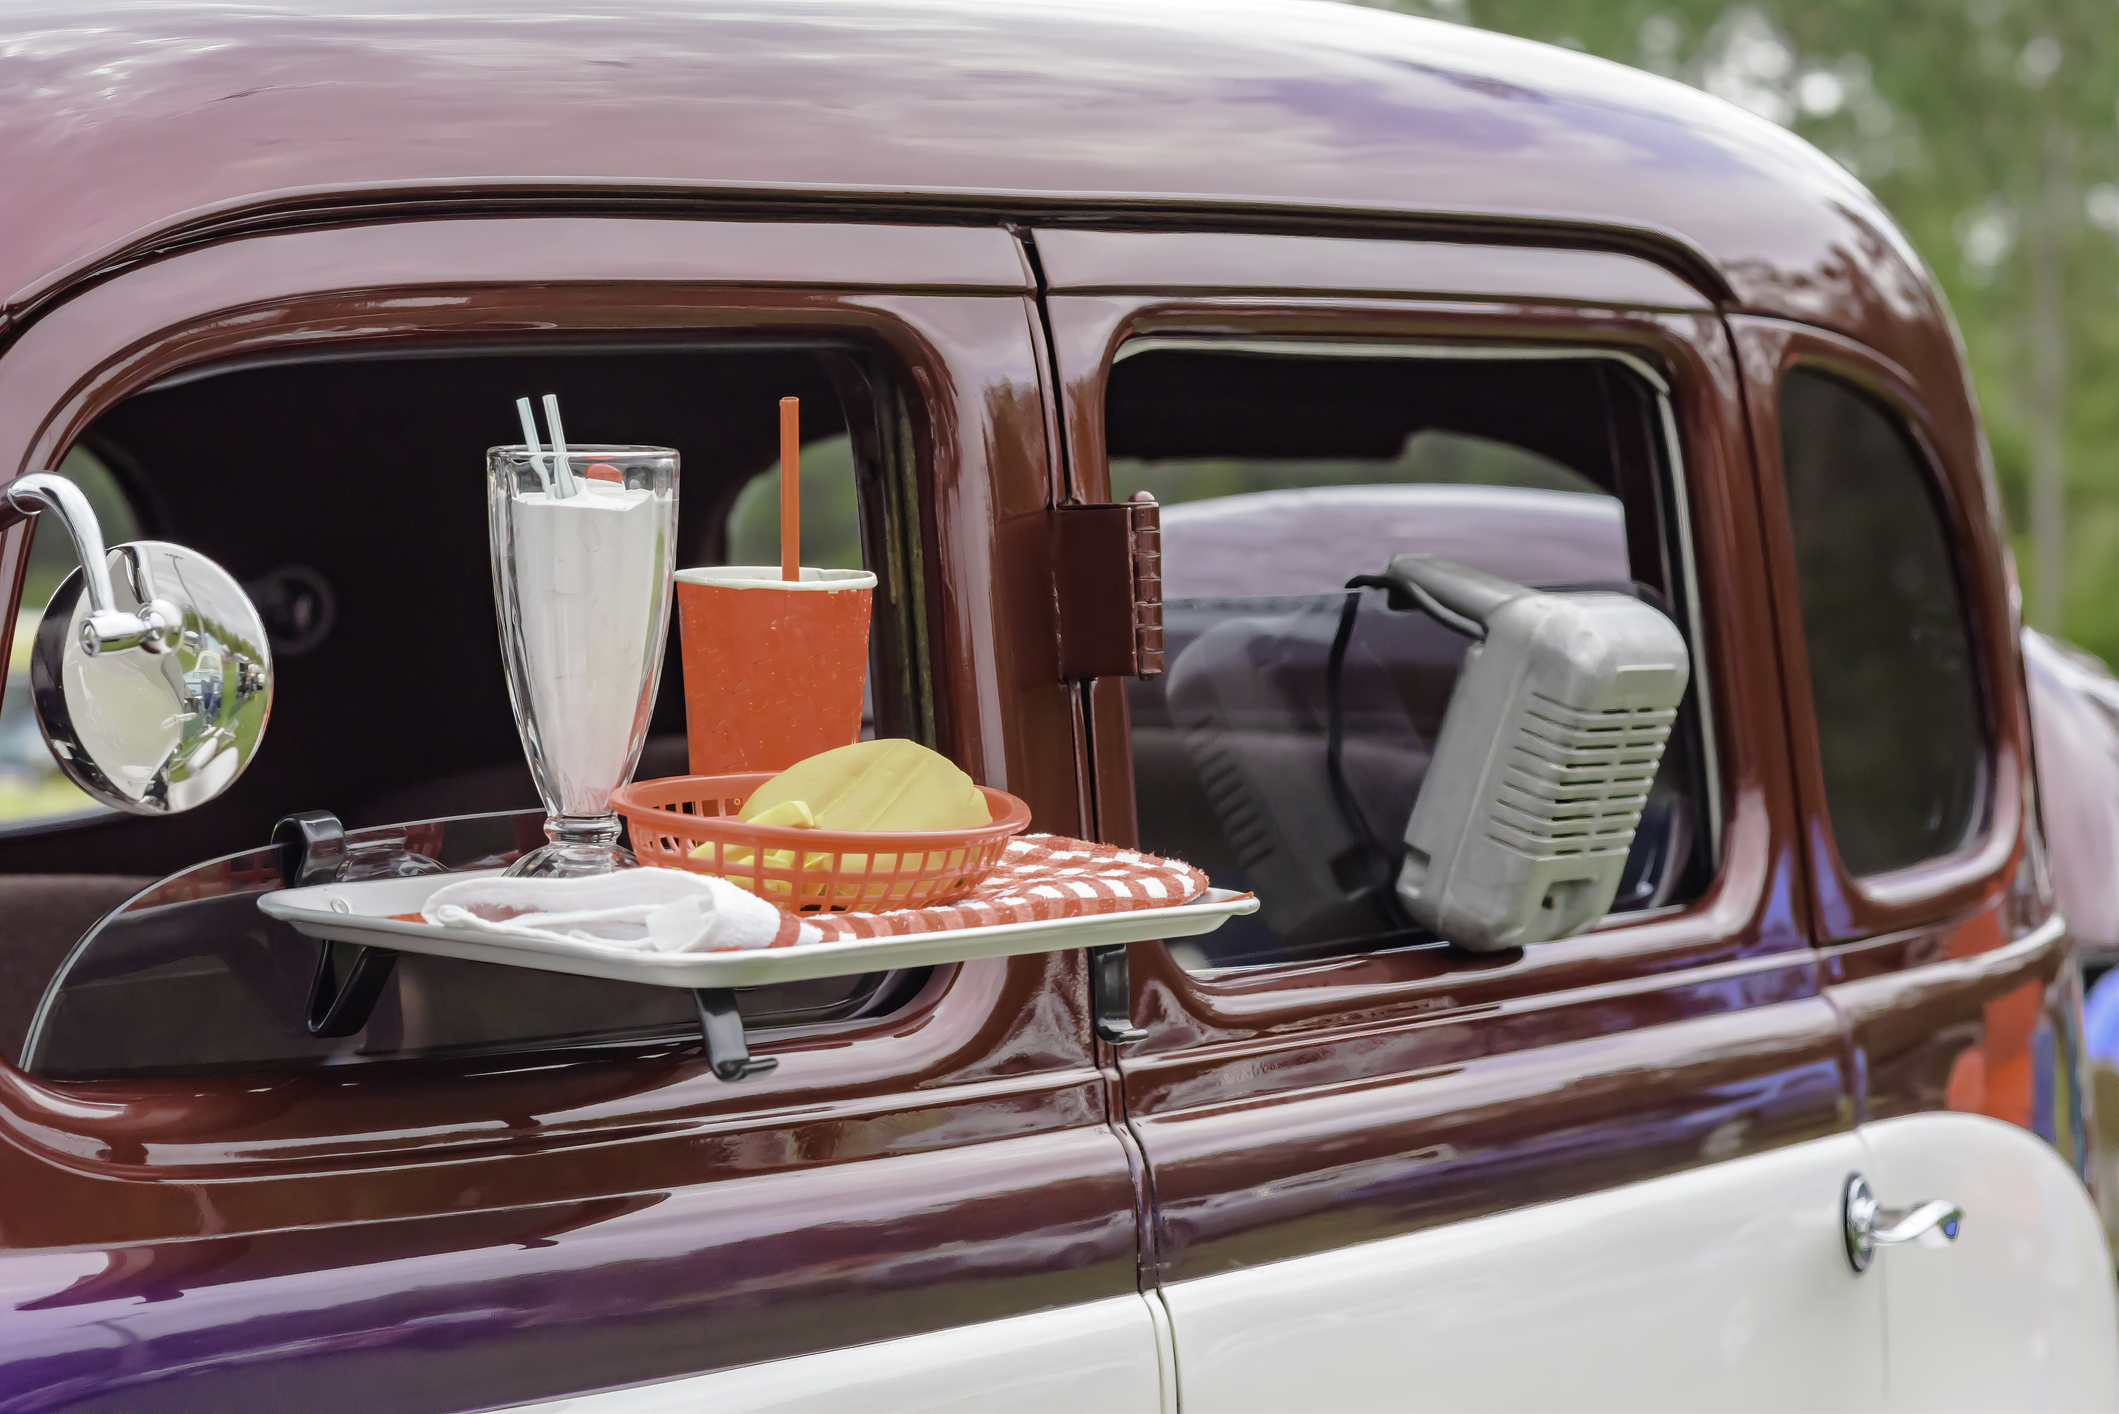 Drive-ins originally had speakers that hung from the vehicle's window